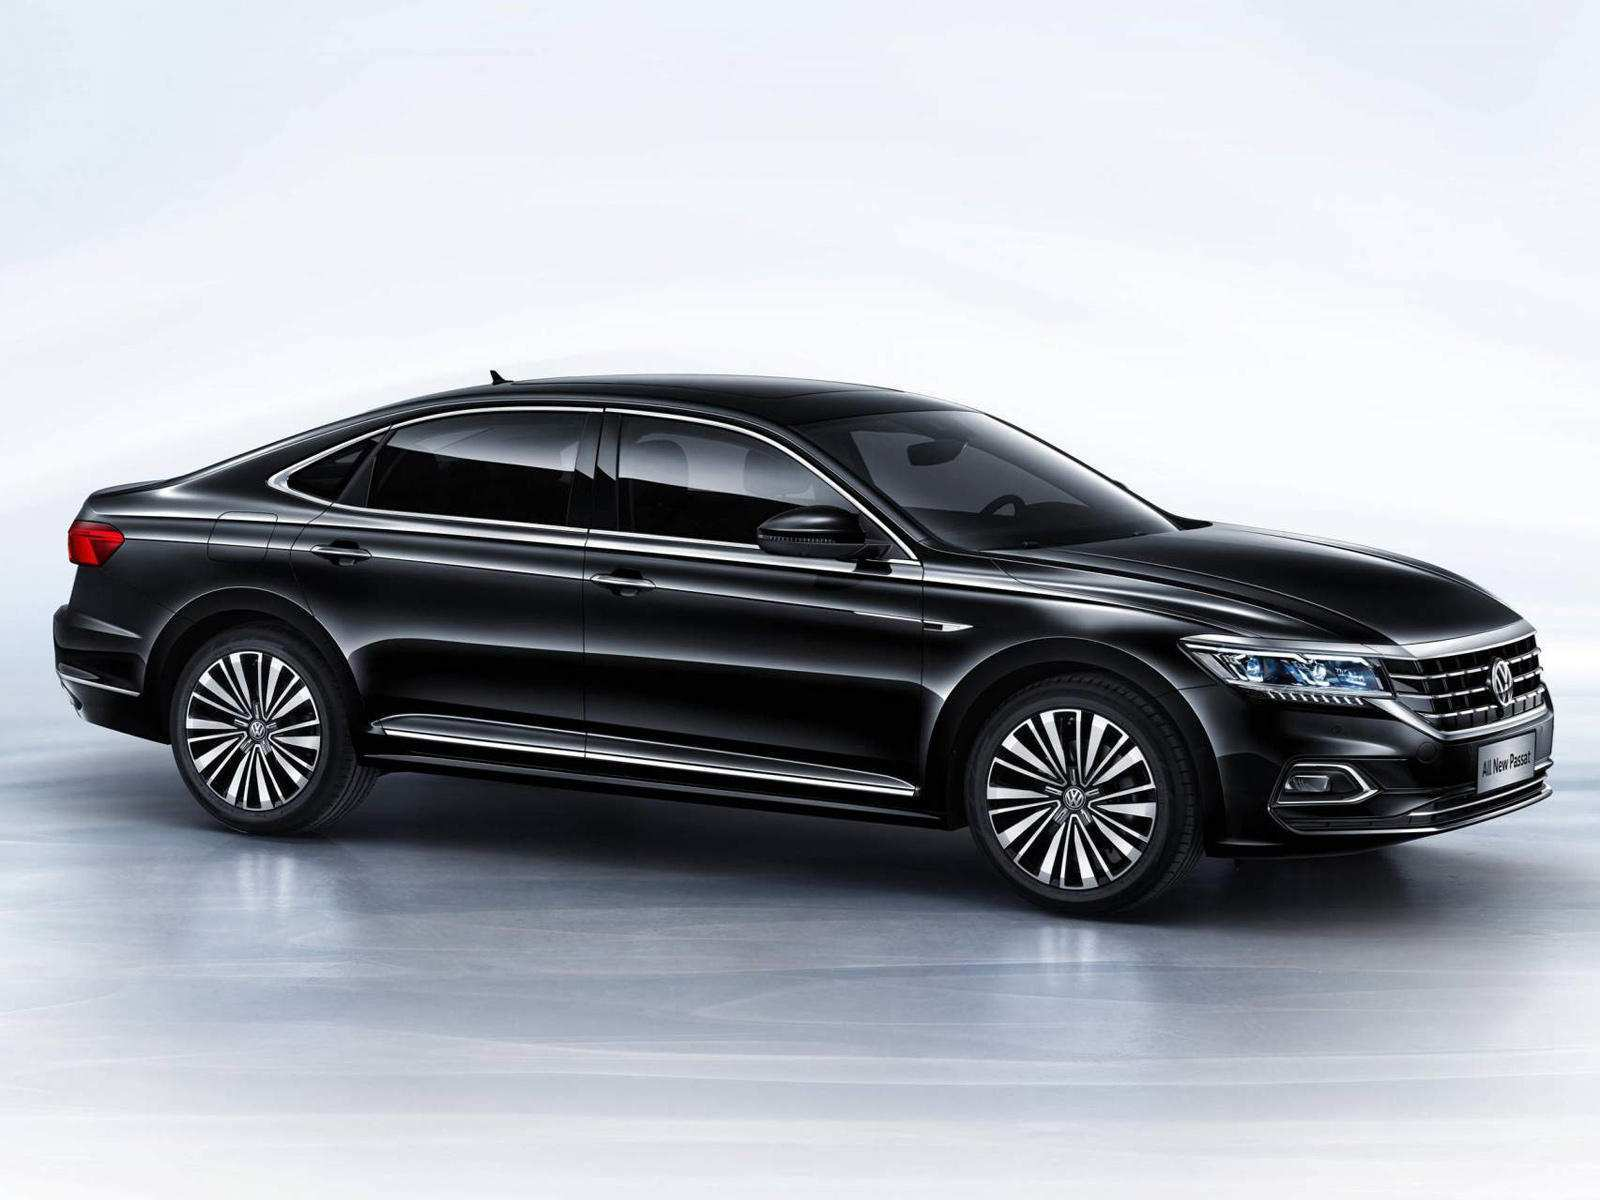 71 All New 2020 The Next Generation VW Cc Rumors with 2020 The Next Generation VW Cc